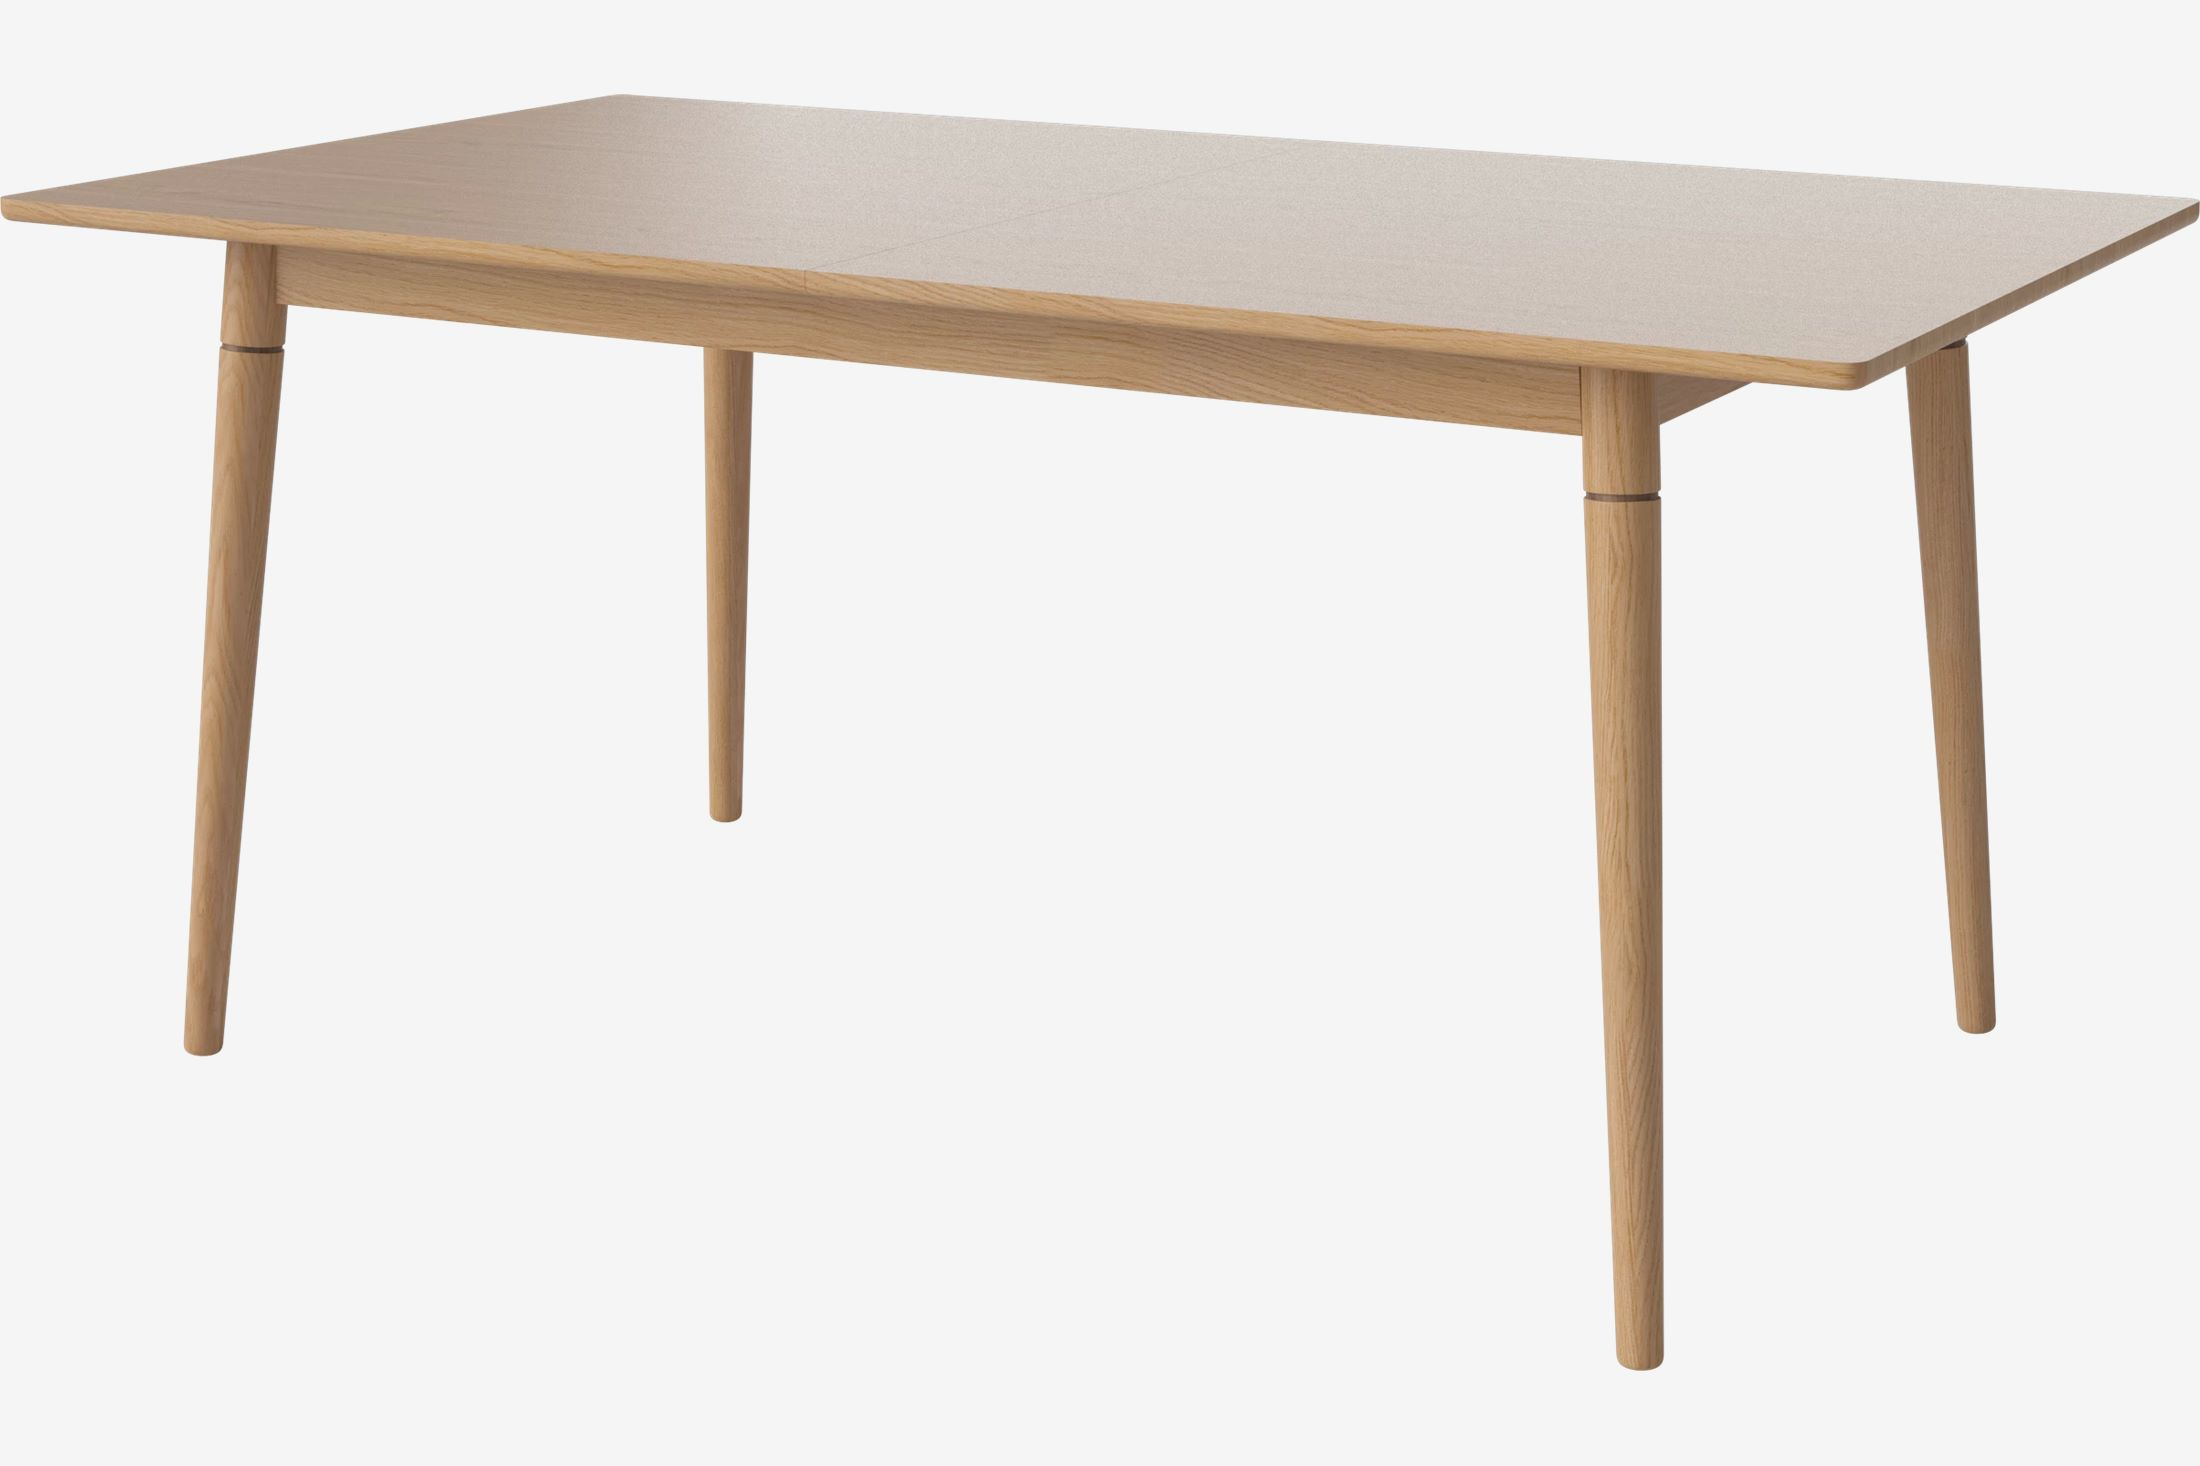 New Coney Dining Table Glismand Rudiger Top In White Laminate